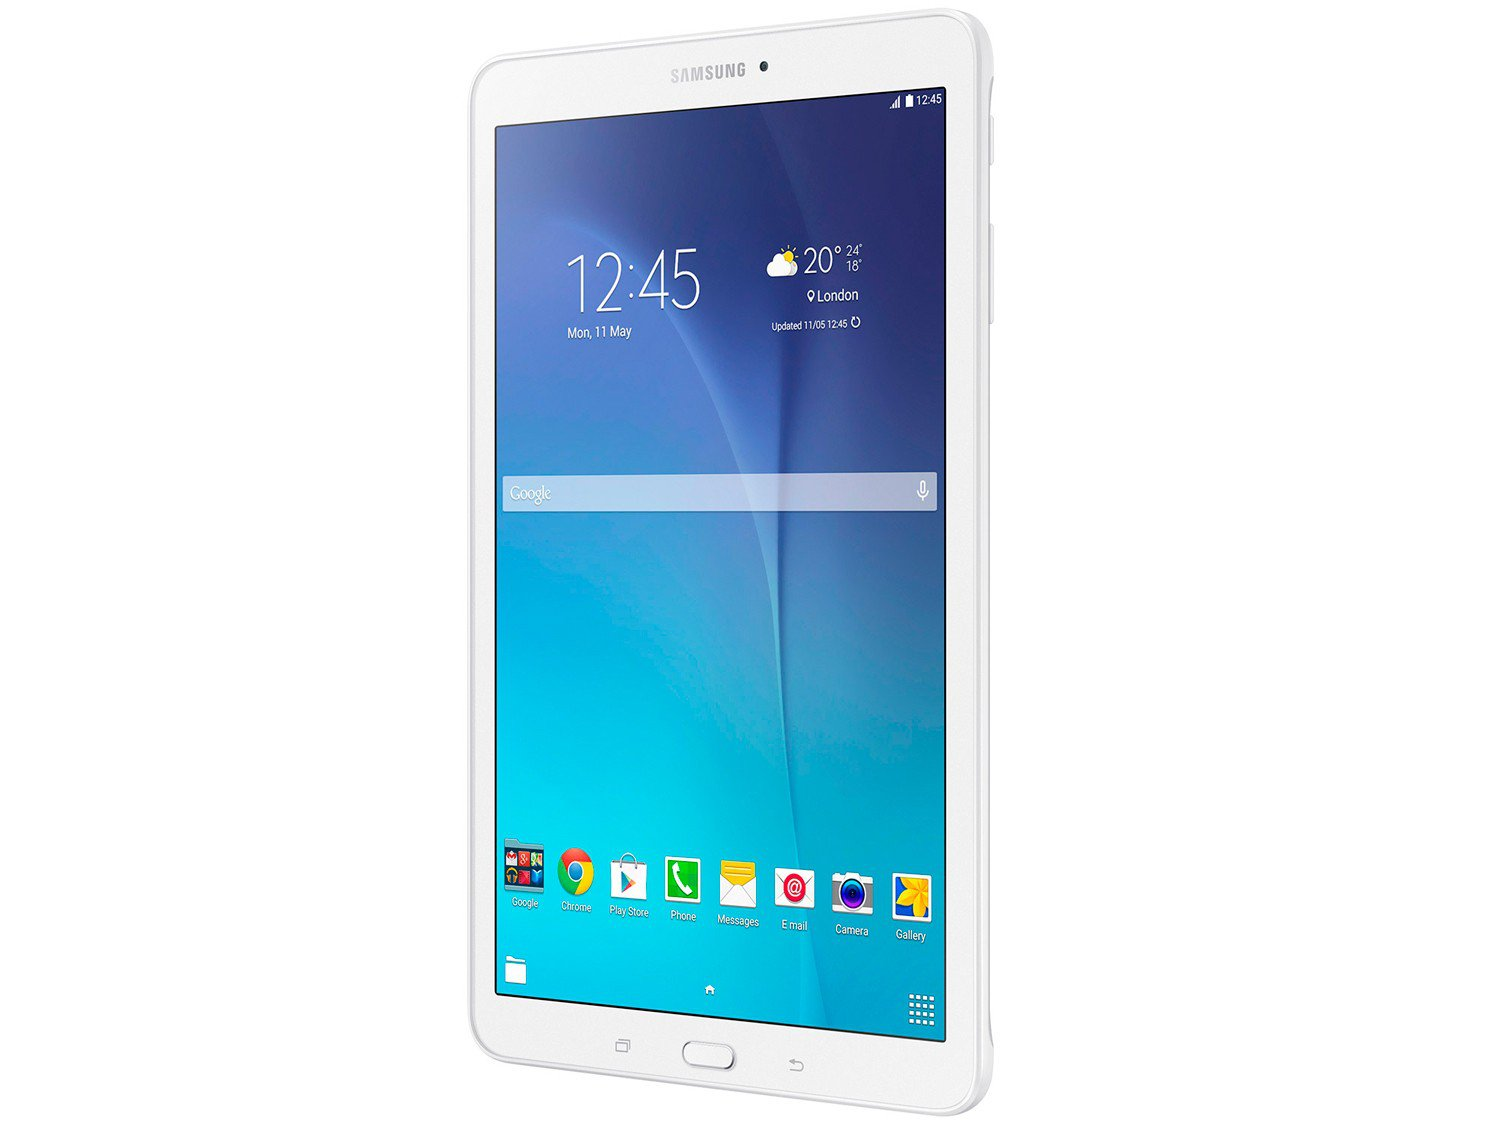 Foto 6 - Tablet Samsung Galaxy Tab E T560 8GB 9,6 Wi-Fi - Android 4.4 Proc. Quad Core Câm. 5MP + Frontal